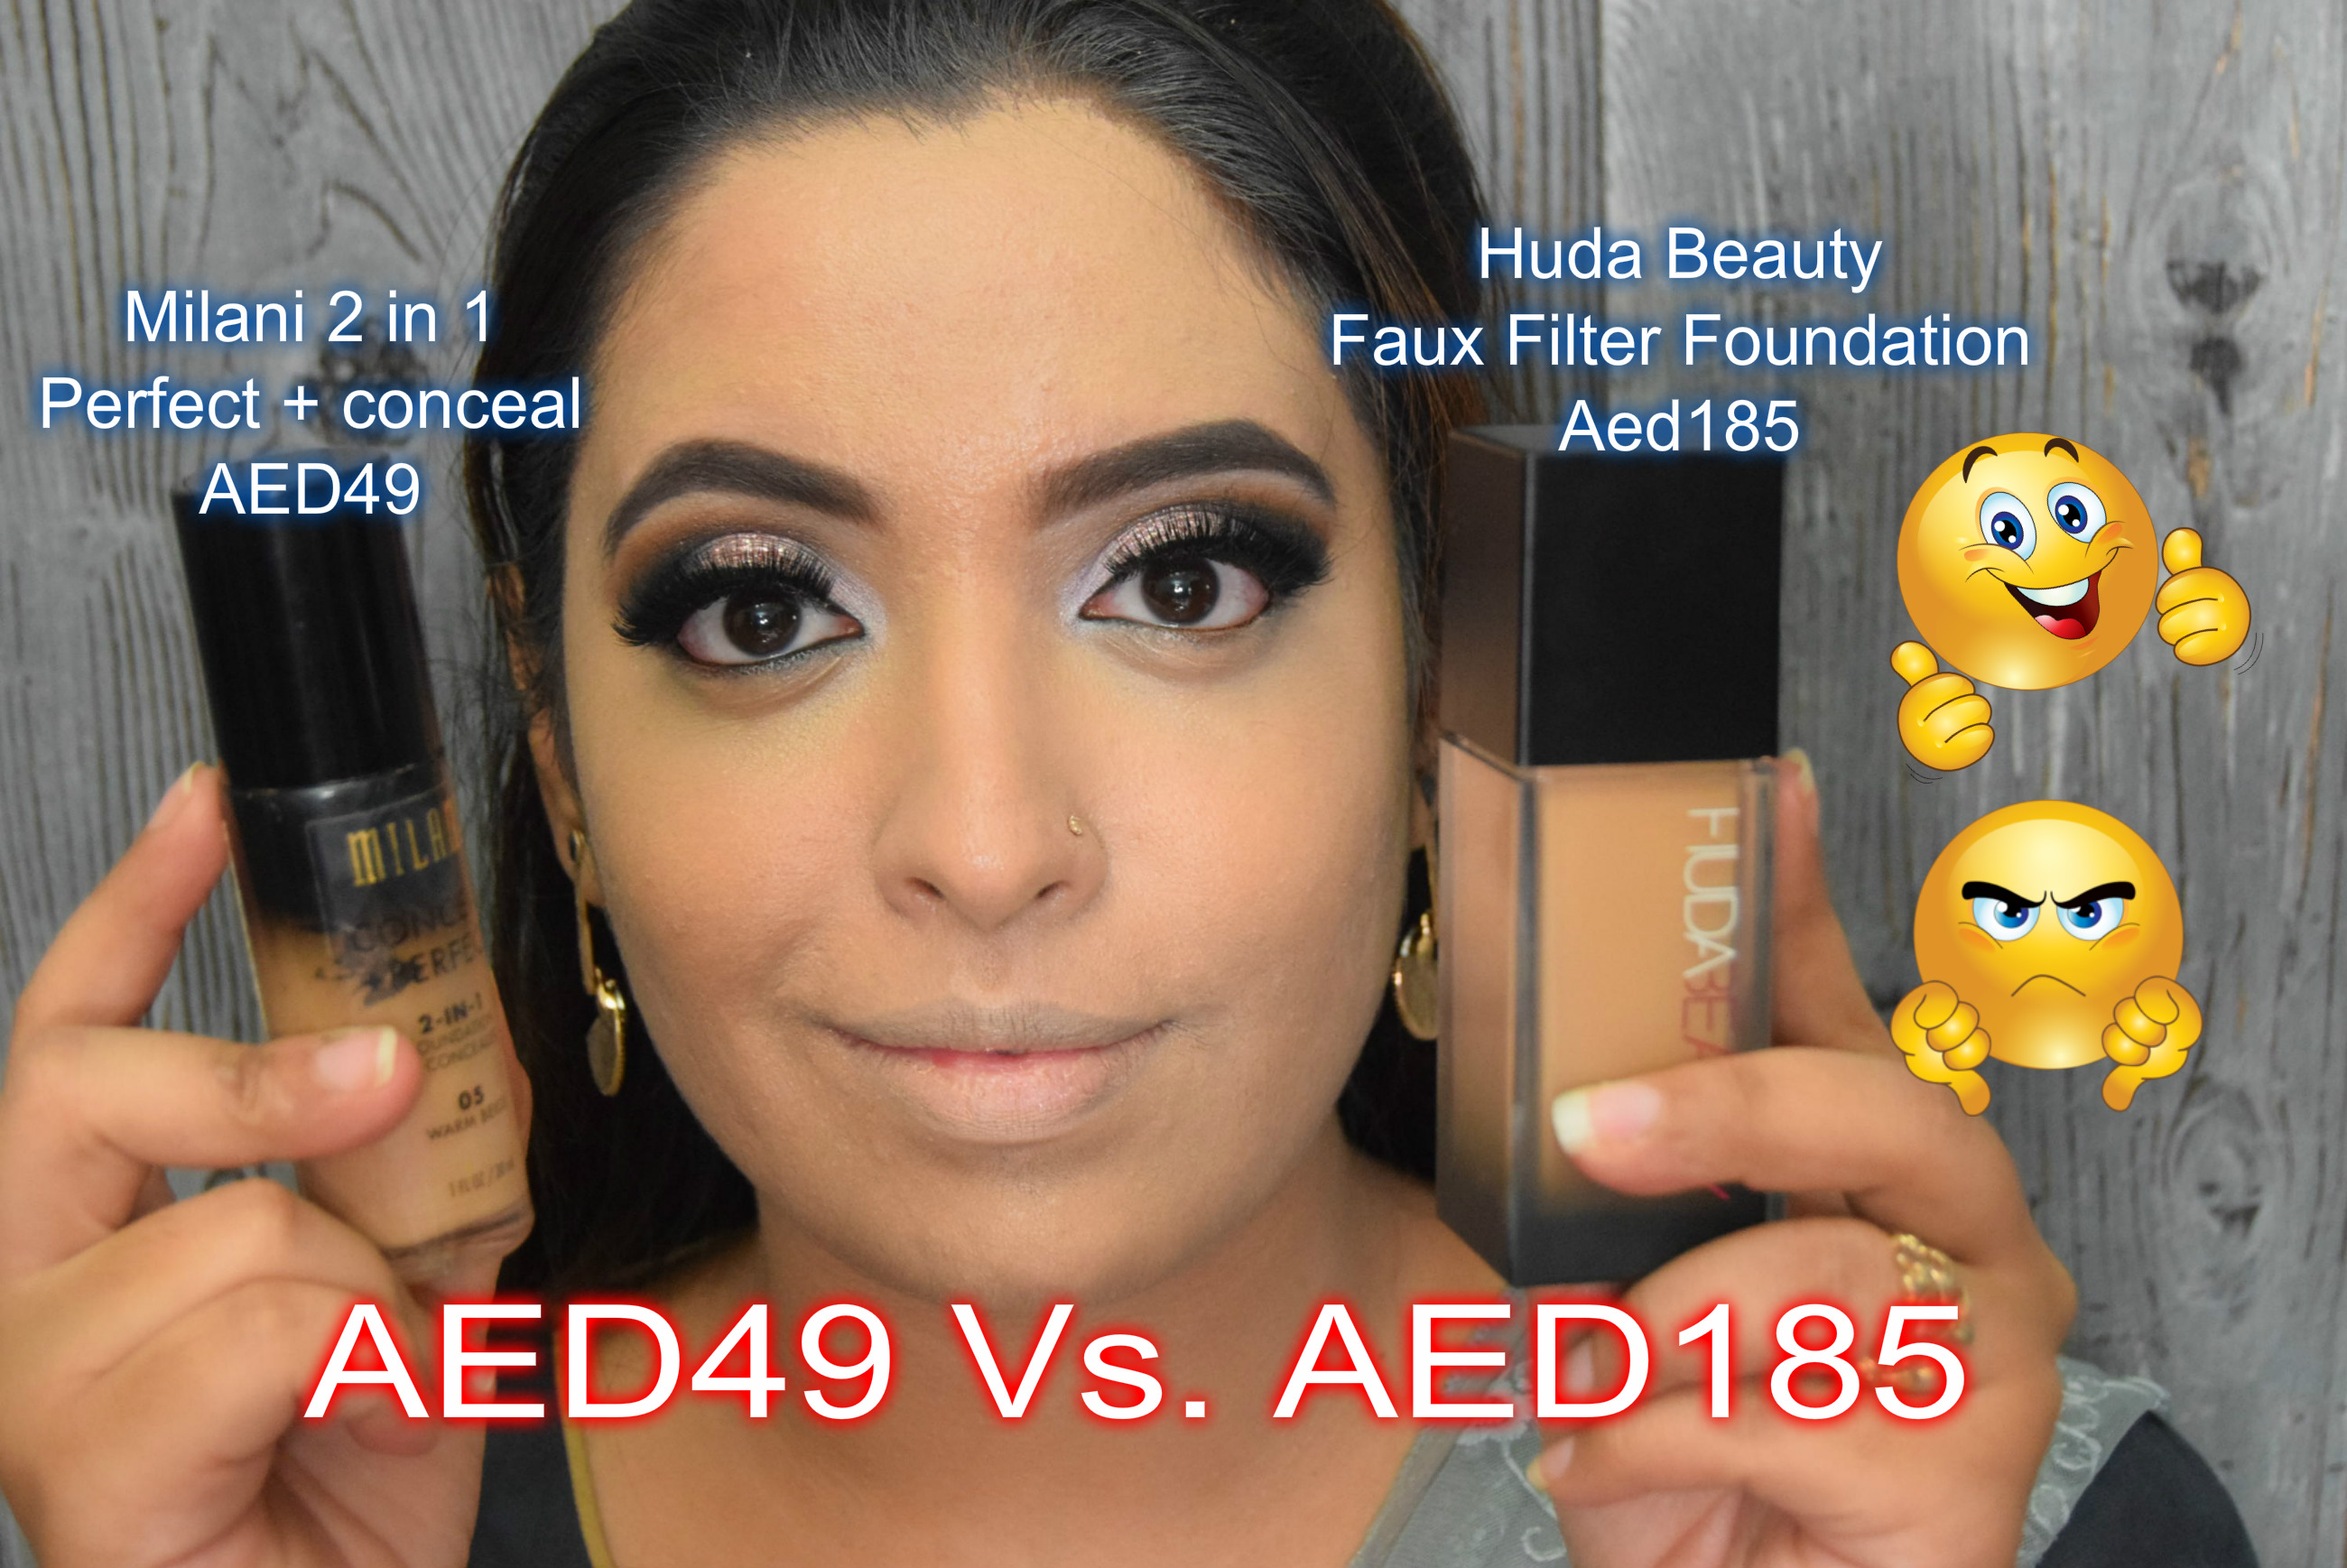 My Favorite Drugstore Foundations Vs. Huda Beauty Faux Filter Foundation